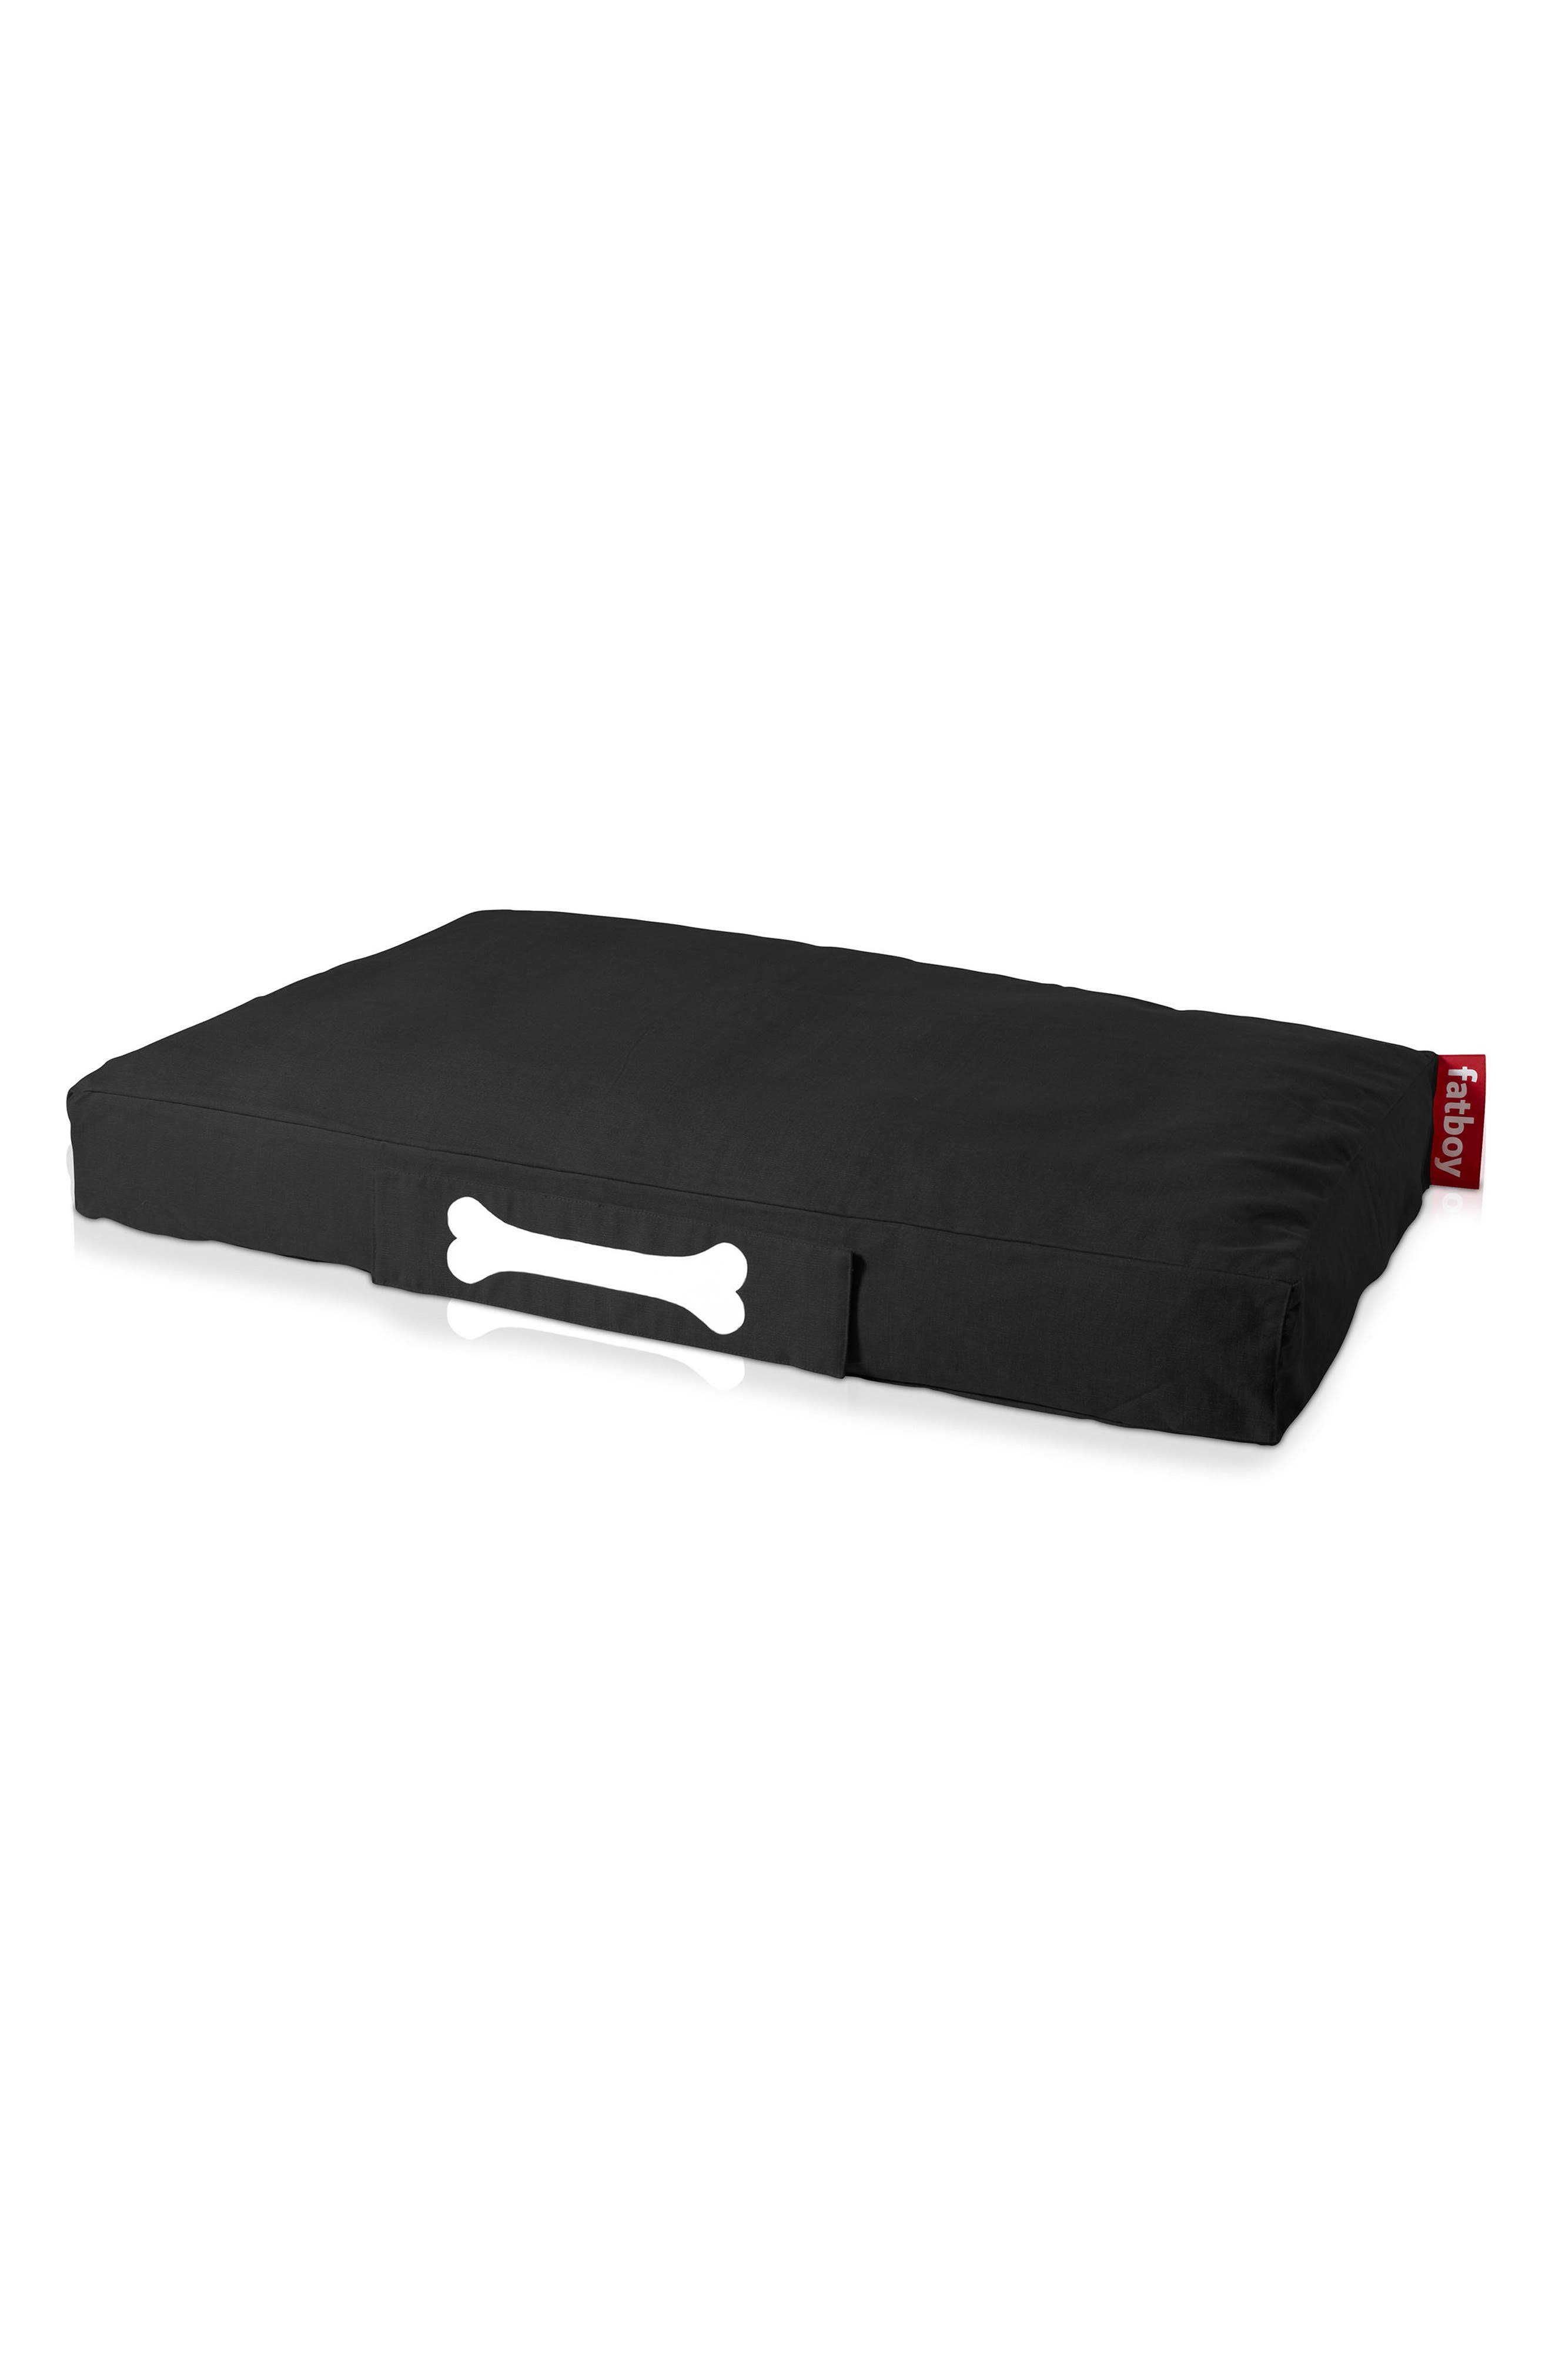 Doggielounge - Stonewashed Pet Bed,                         Main,                         color, 003